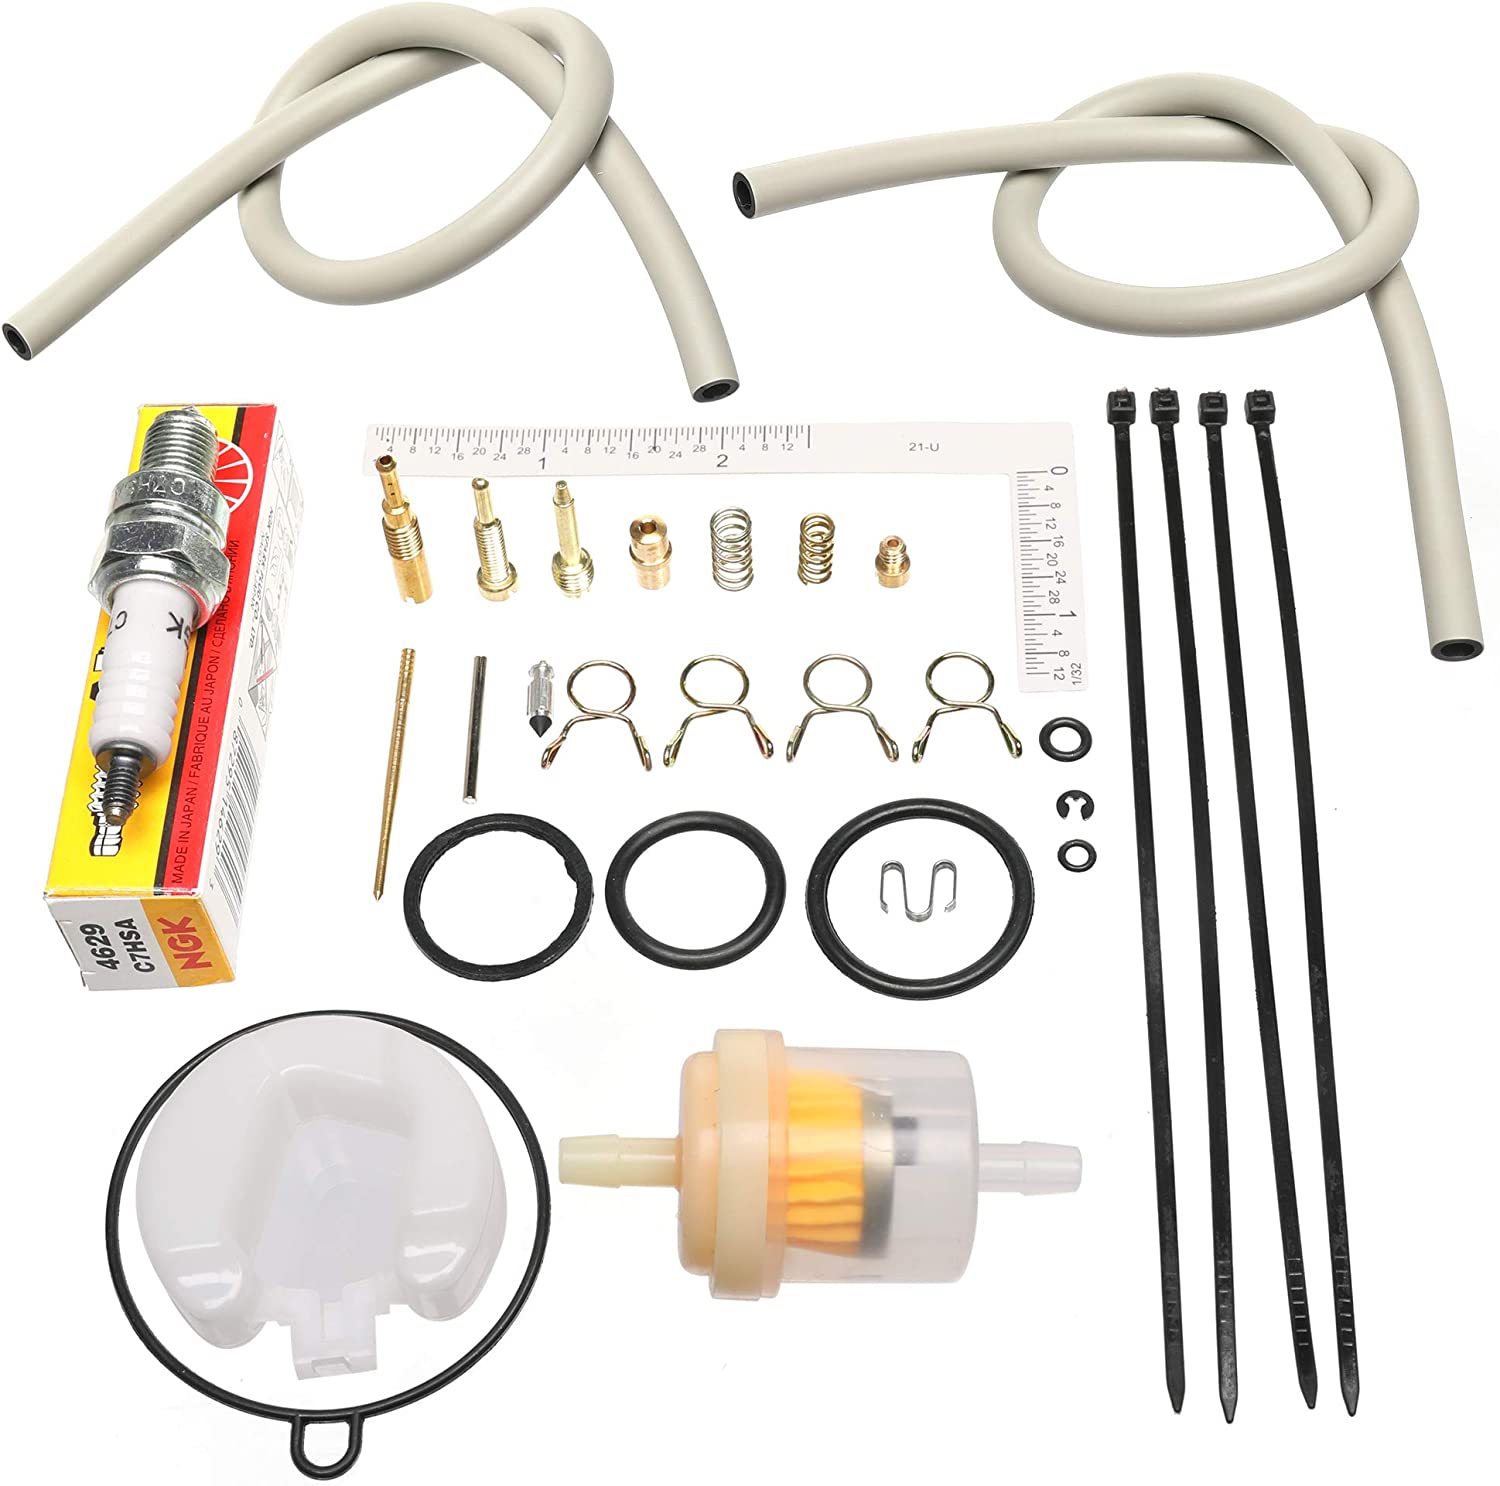 OR2544 Carburetor Complete Master Repair Rebuild Kit for Honda CRF70 CRF70F XR70 XR70R